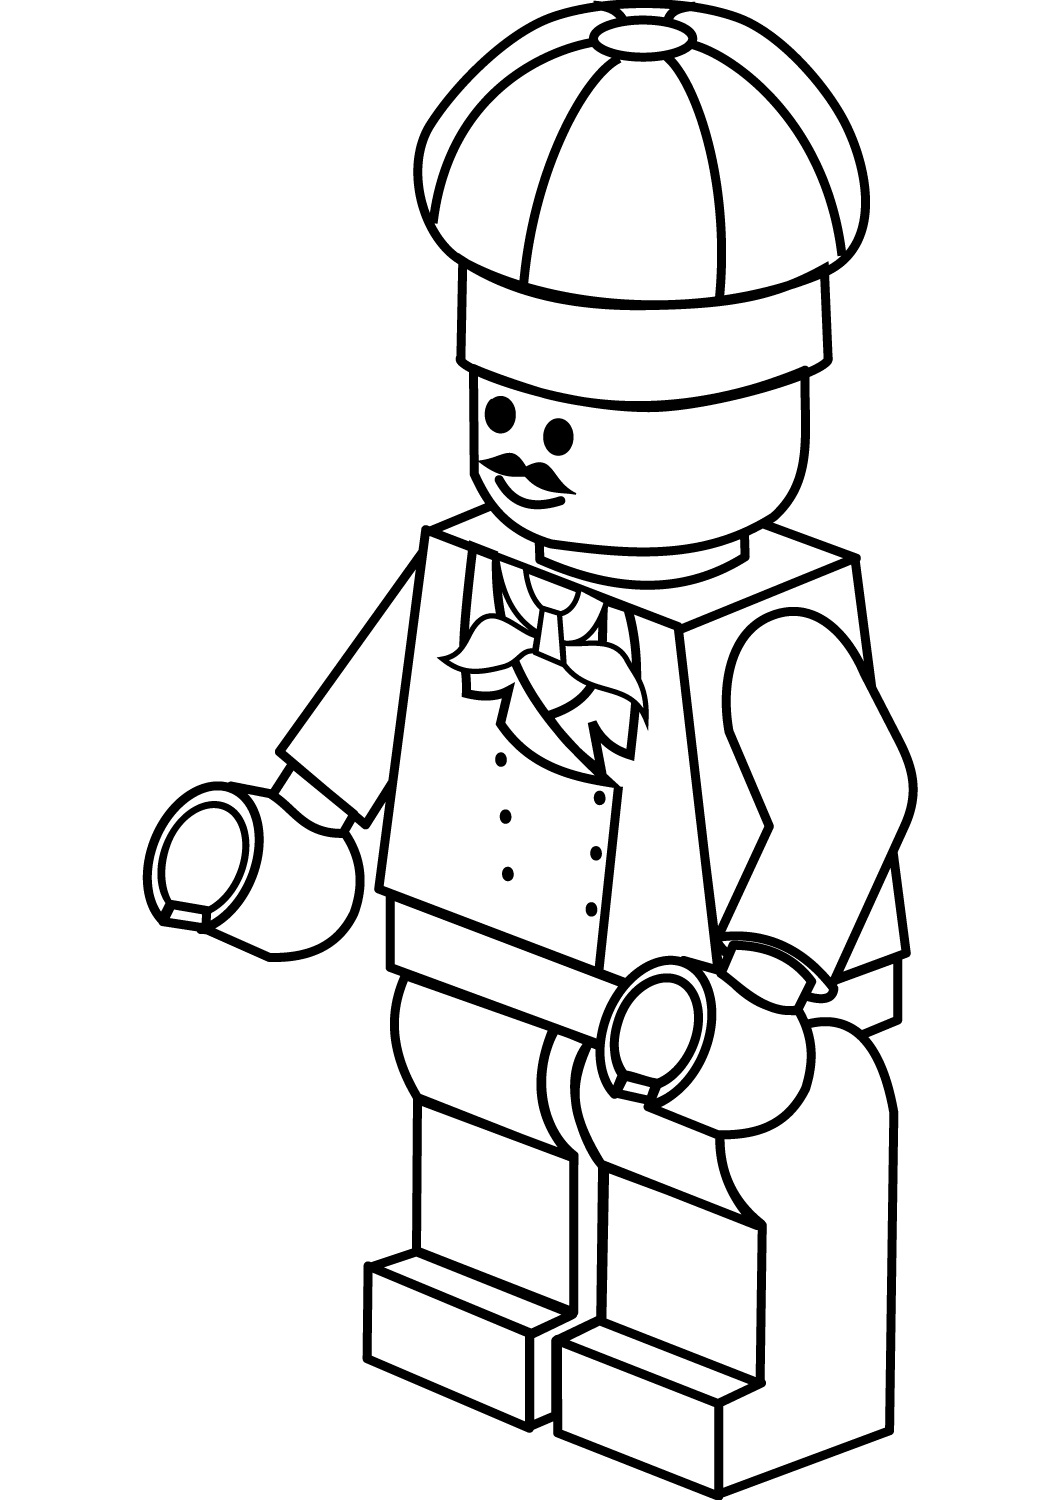 Lego City Chef Coloring Page